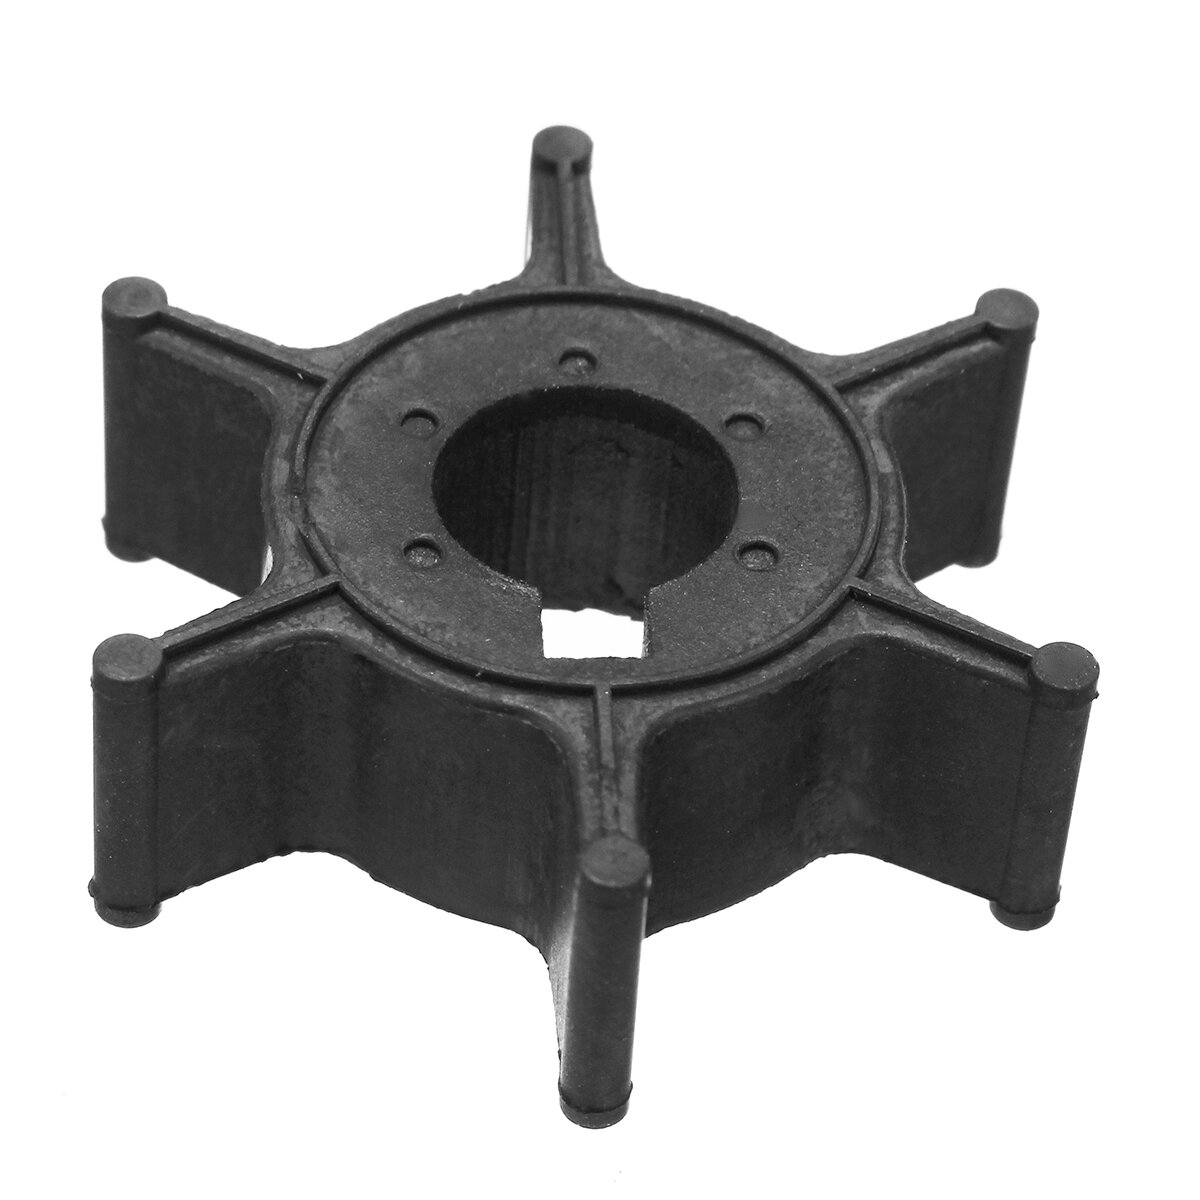 Outboard Impeller 5hp Tohatsu 4hp 6hp 4-Stroke Engines